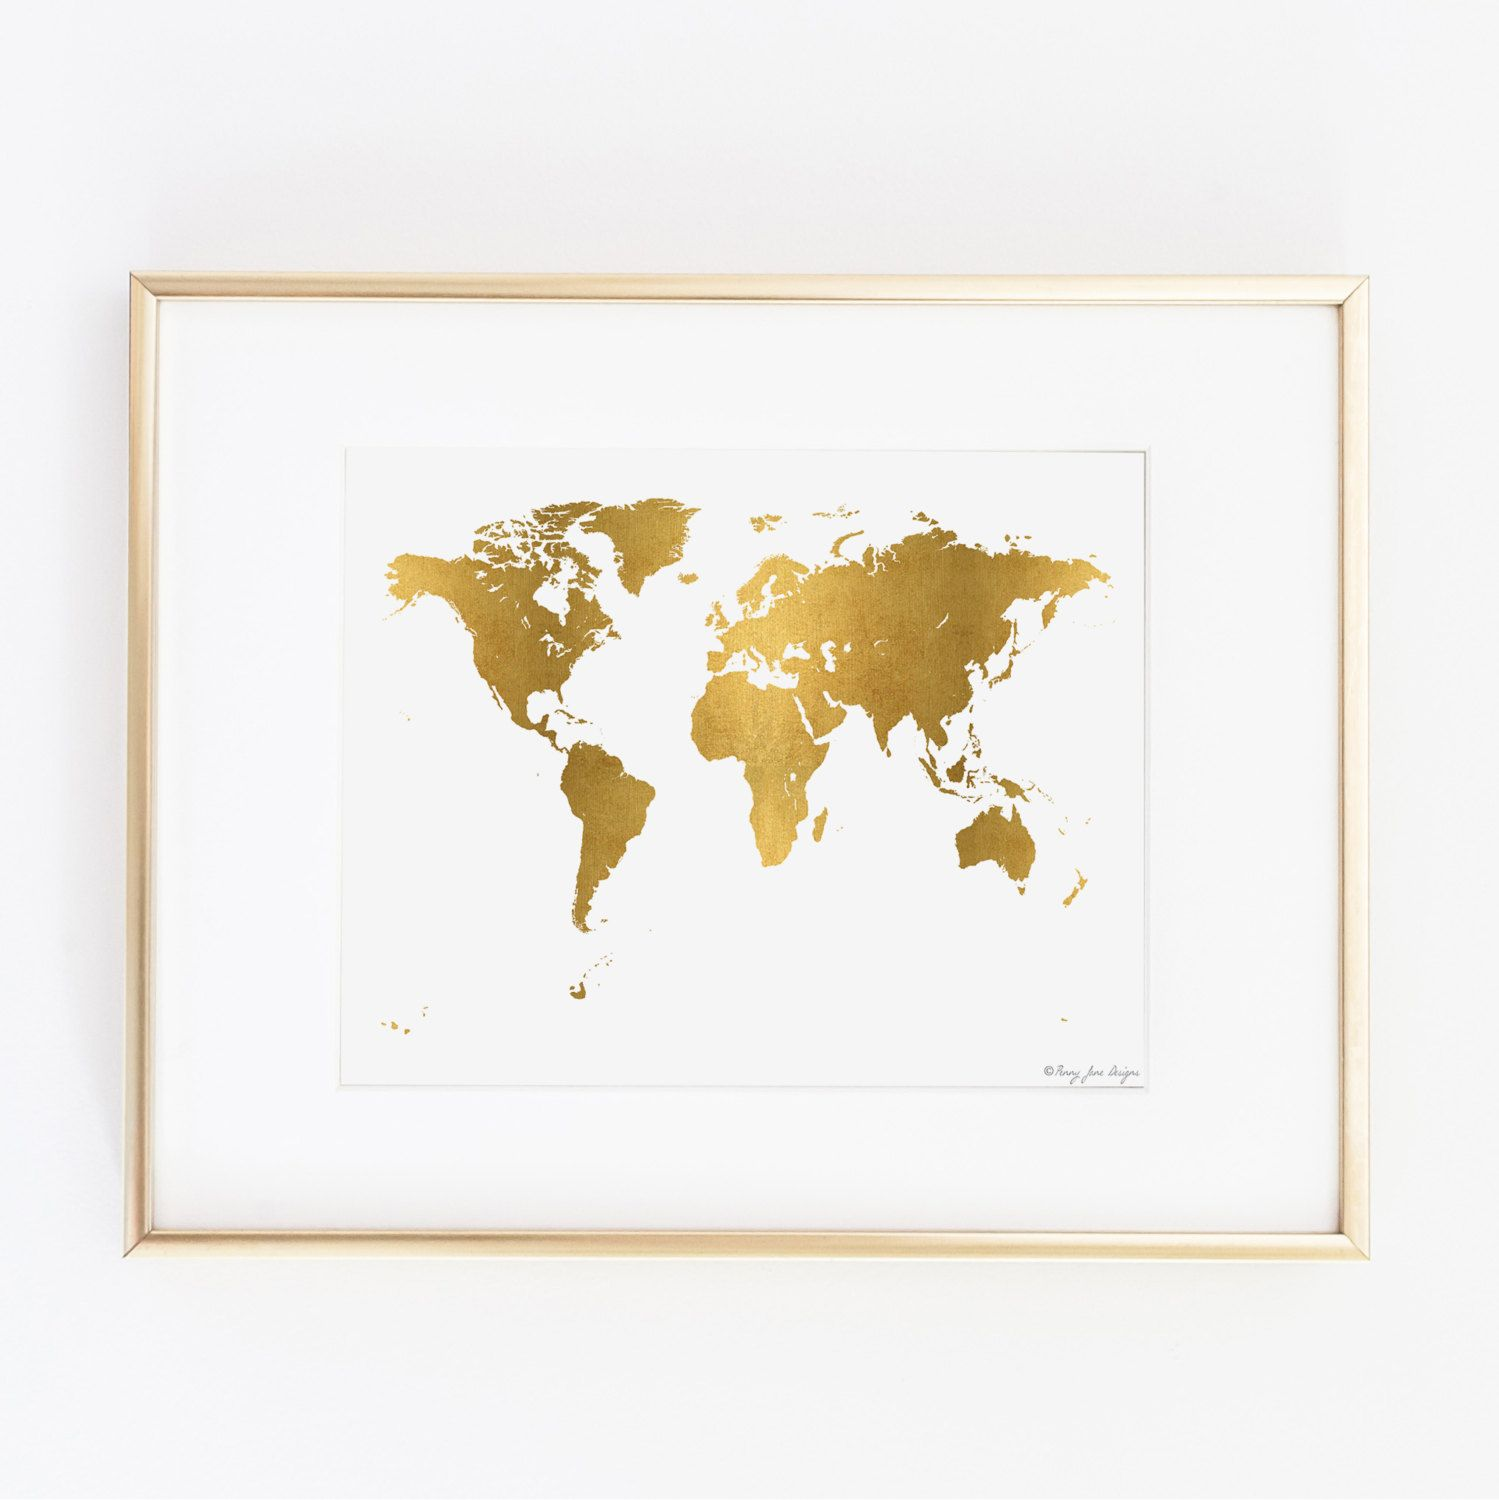 World map print world map poster digital art map print gold gold world map digital printable art instant door pennyjanedesign 500 gumiabroncs Image collections